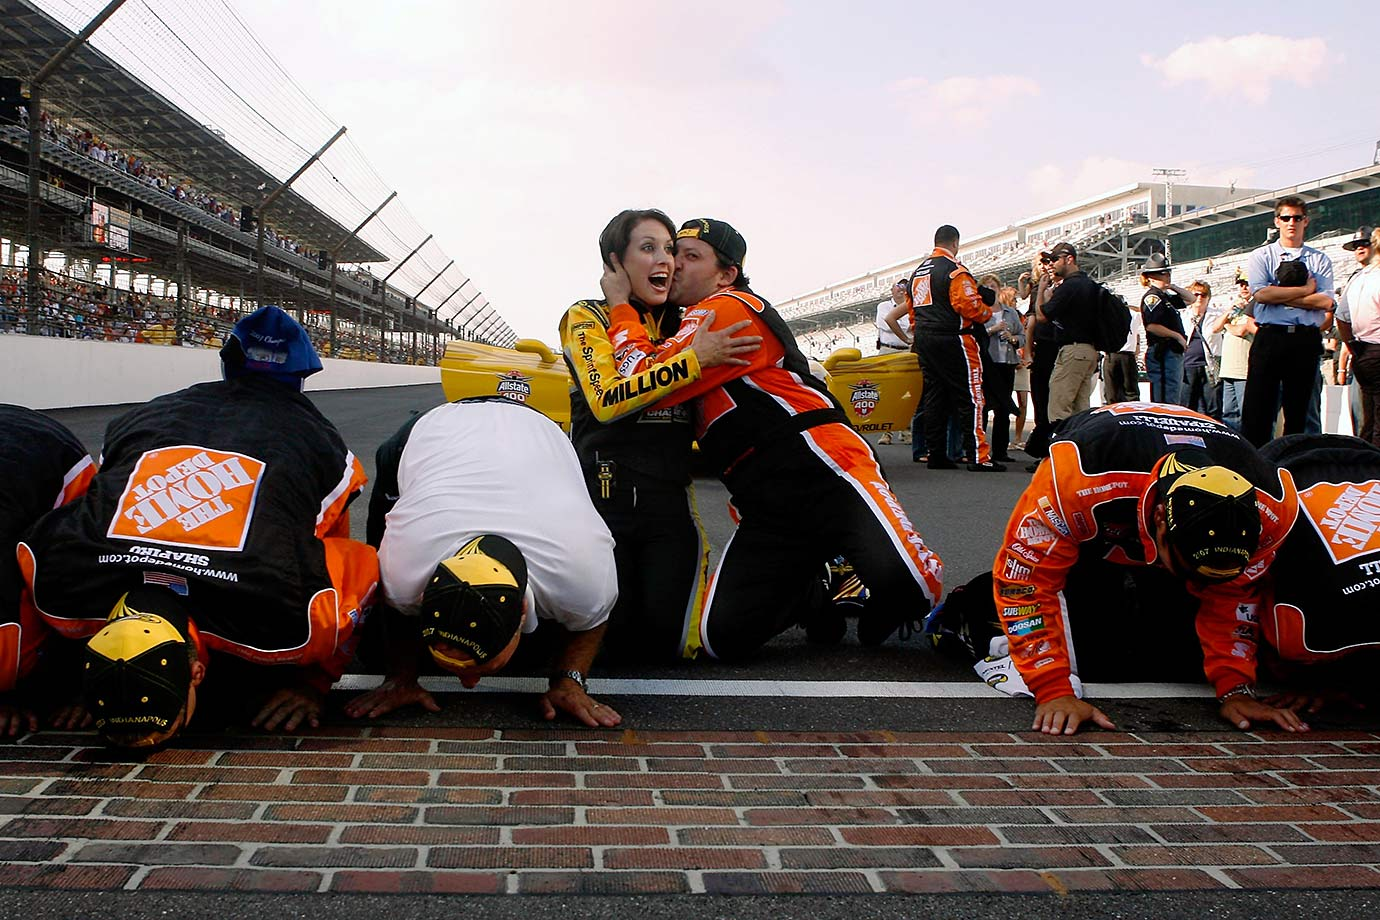 Tony Stewart, who this week announced plans to retire after the 2016 season, is pictured kissing Miss Sprint Cup after his second race win at Indianapolis Motor Speedway. The Columbus, Ind., native also kissed the bricks in 2005.